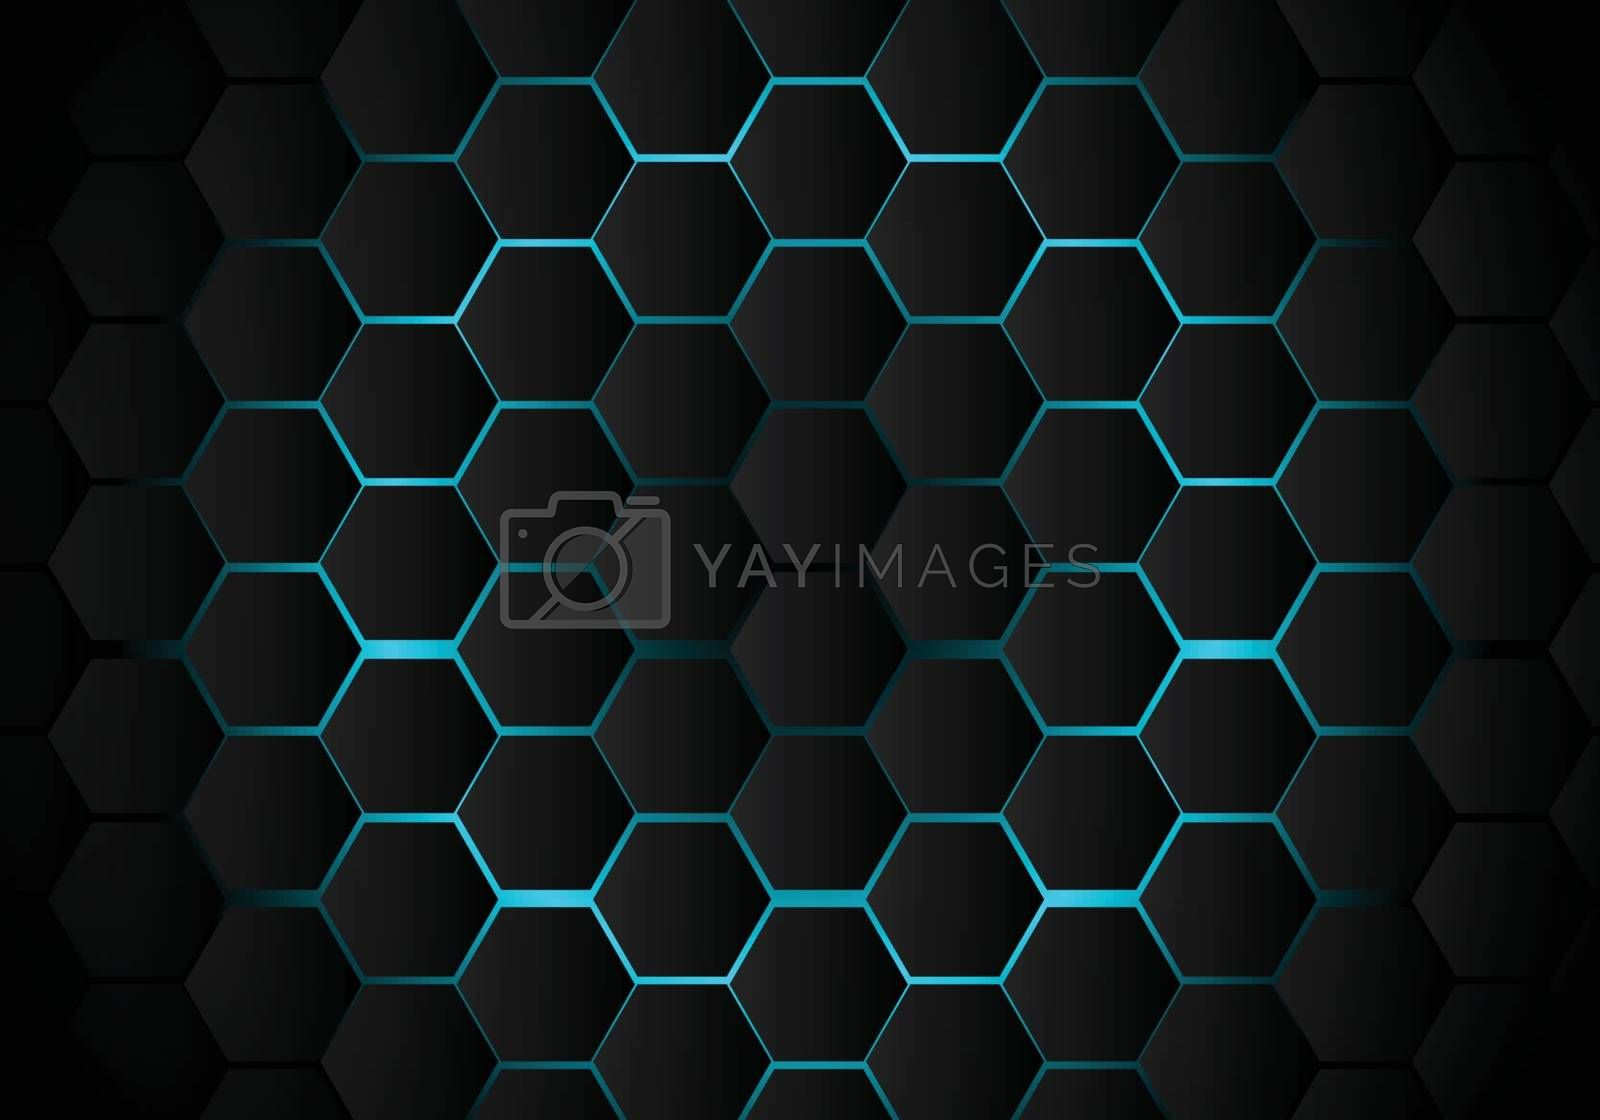 Abstract black hexagon pattern on light blue background technology style. Honeycomb. Vector illustration